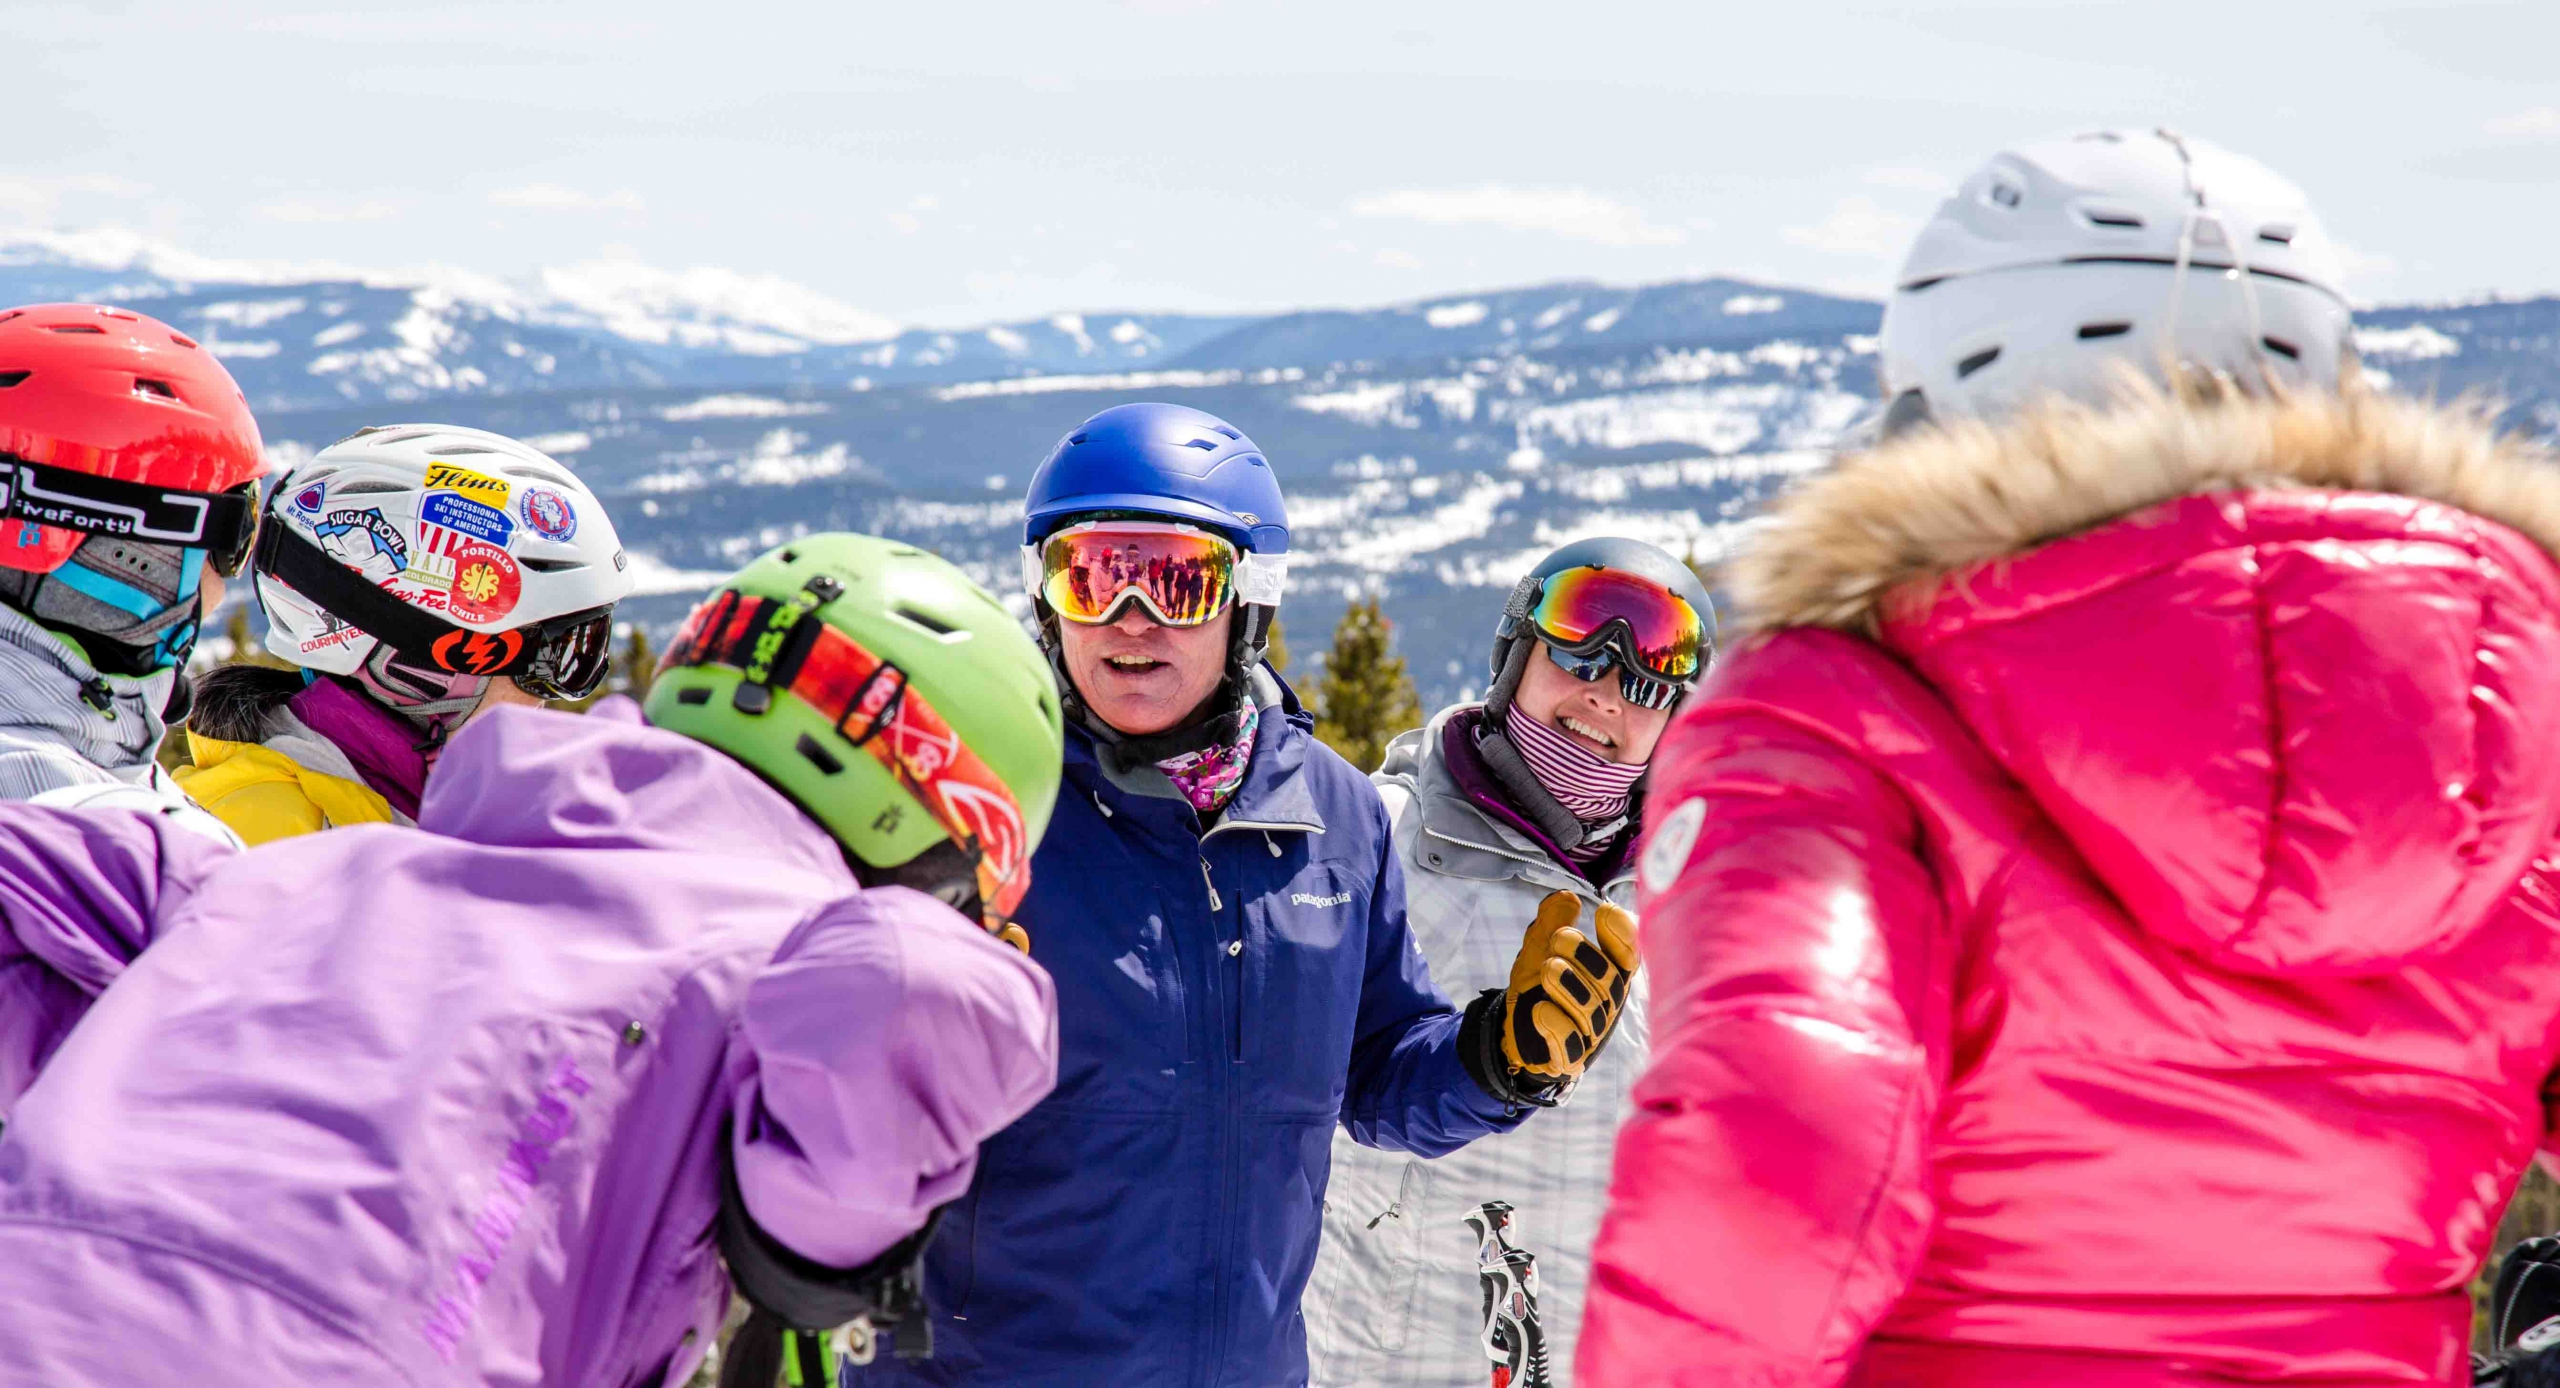 Mermer Blakeslee leads a womens clinic of ski instructors